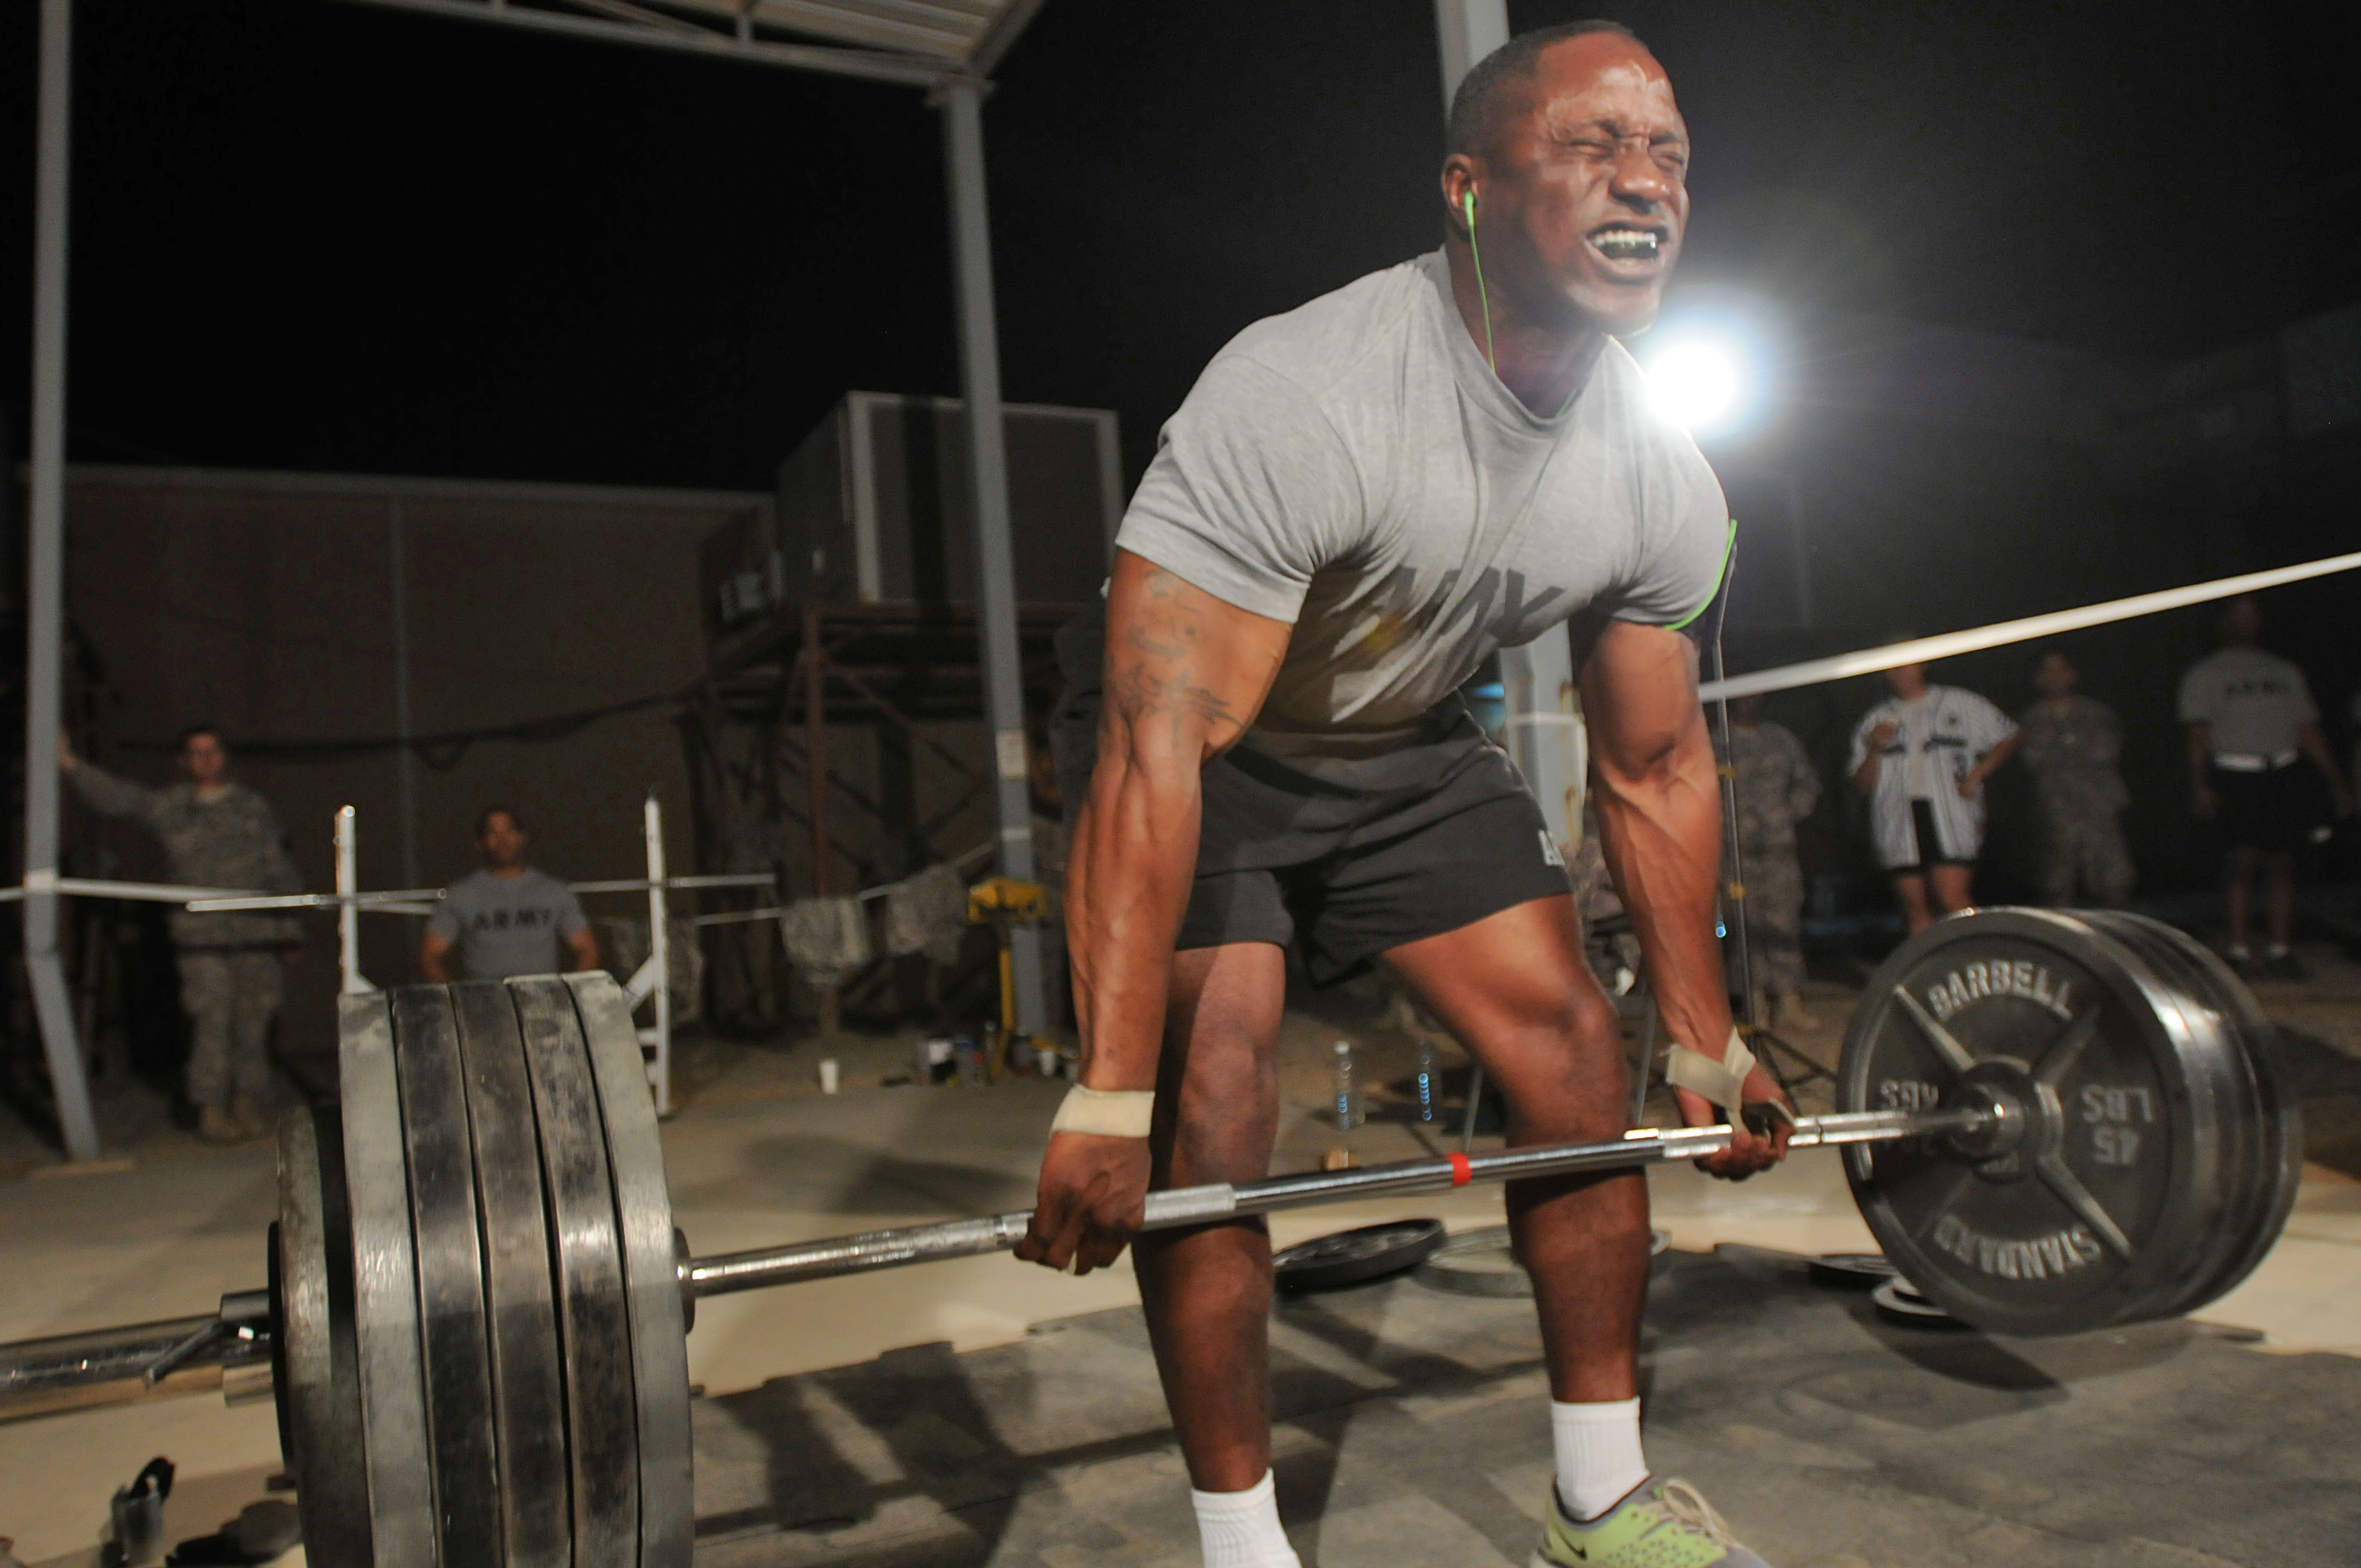 Top 10 Awesome Weight Lifting Gyms With Photos